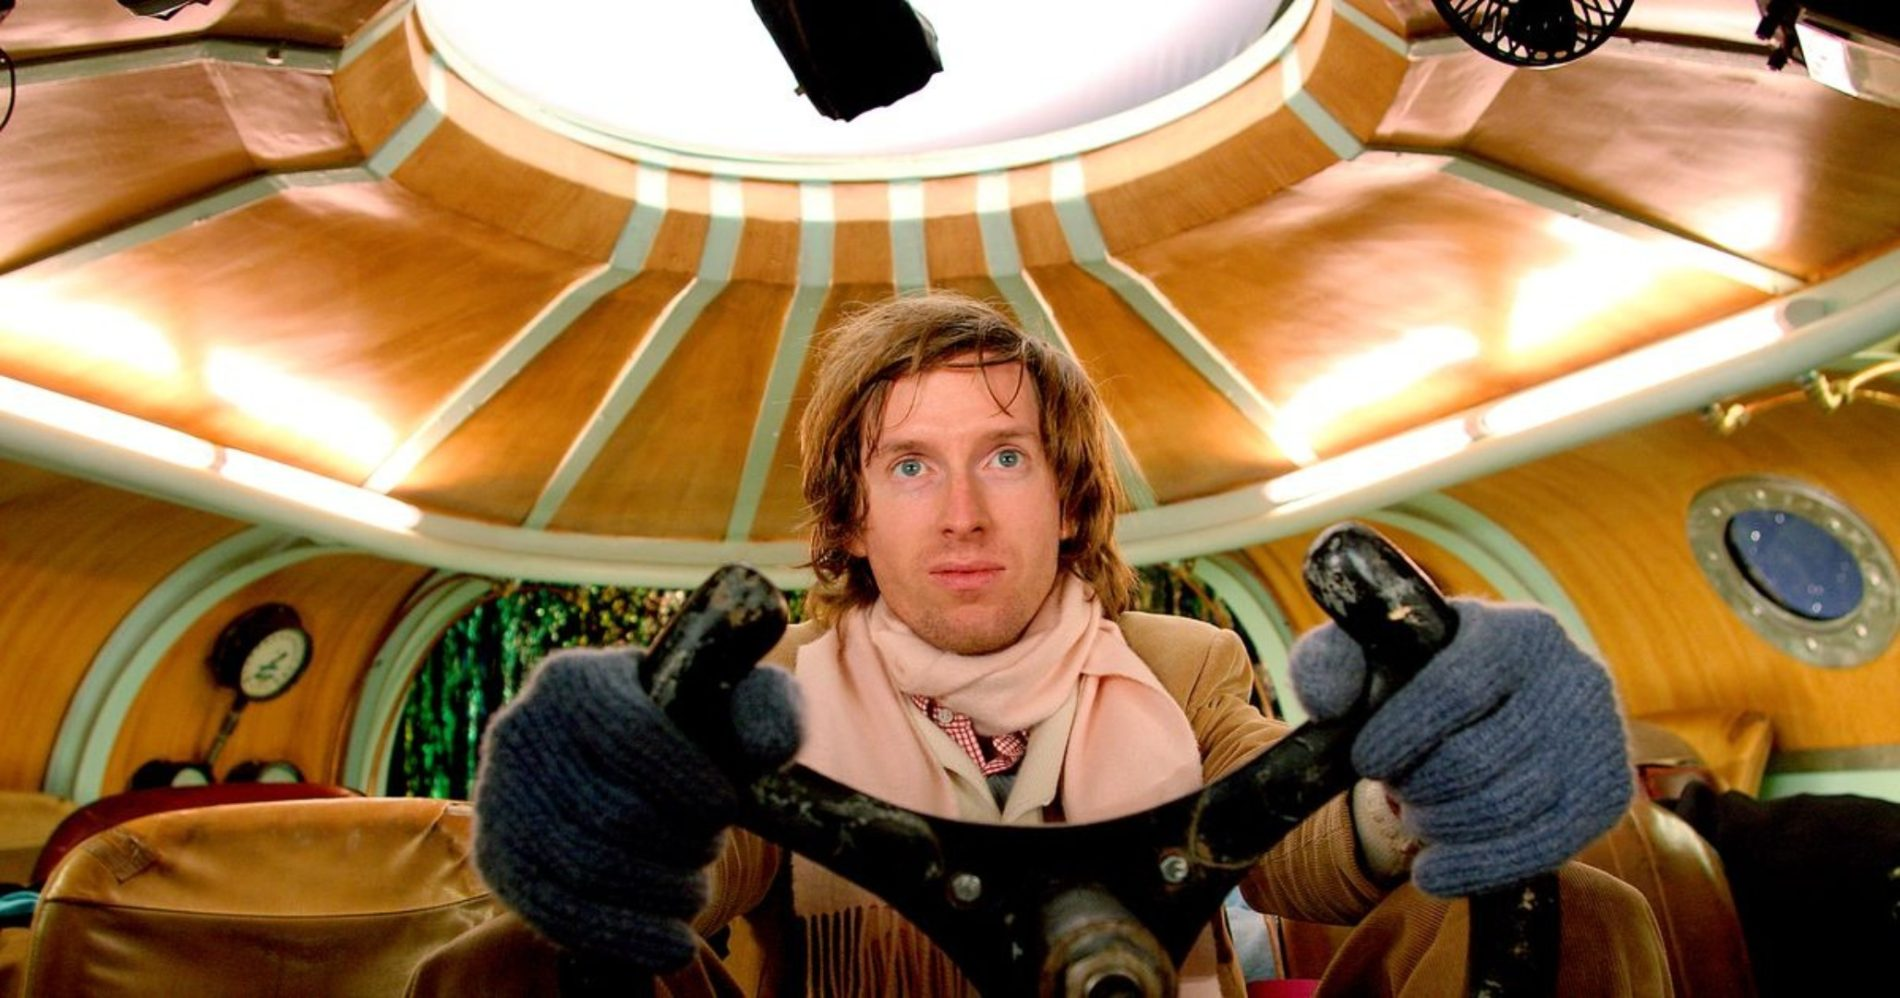 He Saved Latin: A Wes Anderson Retrospective